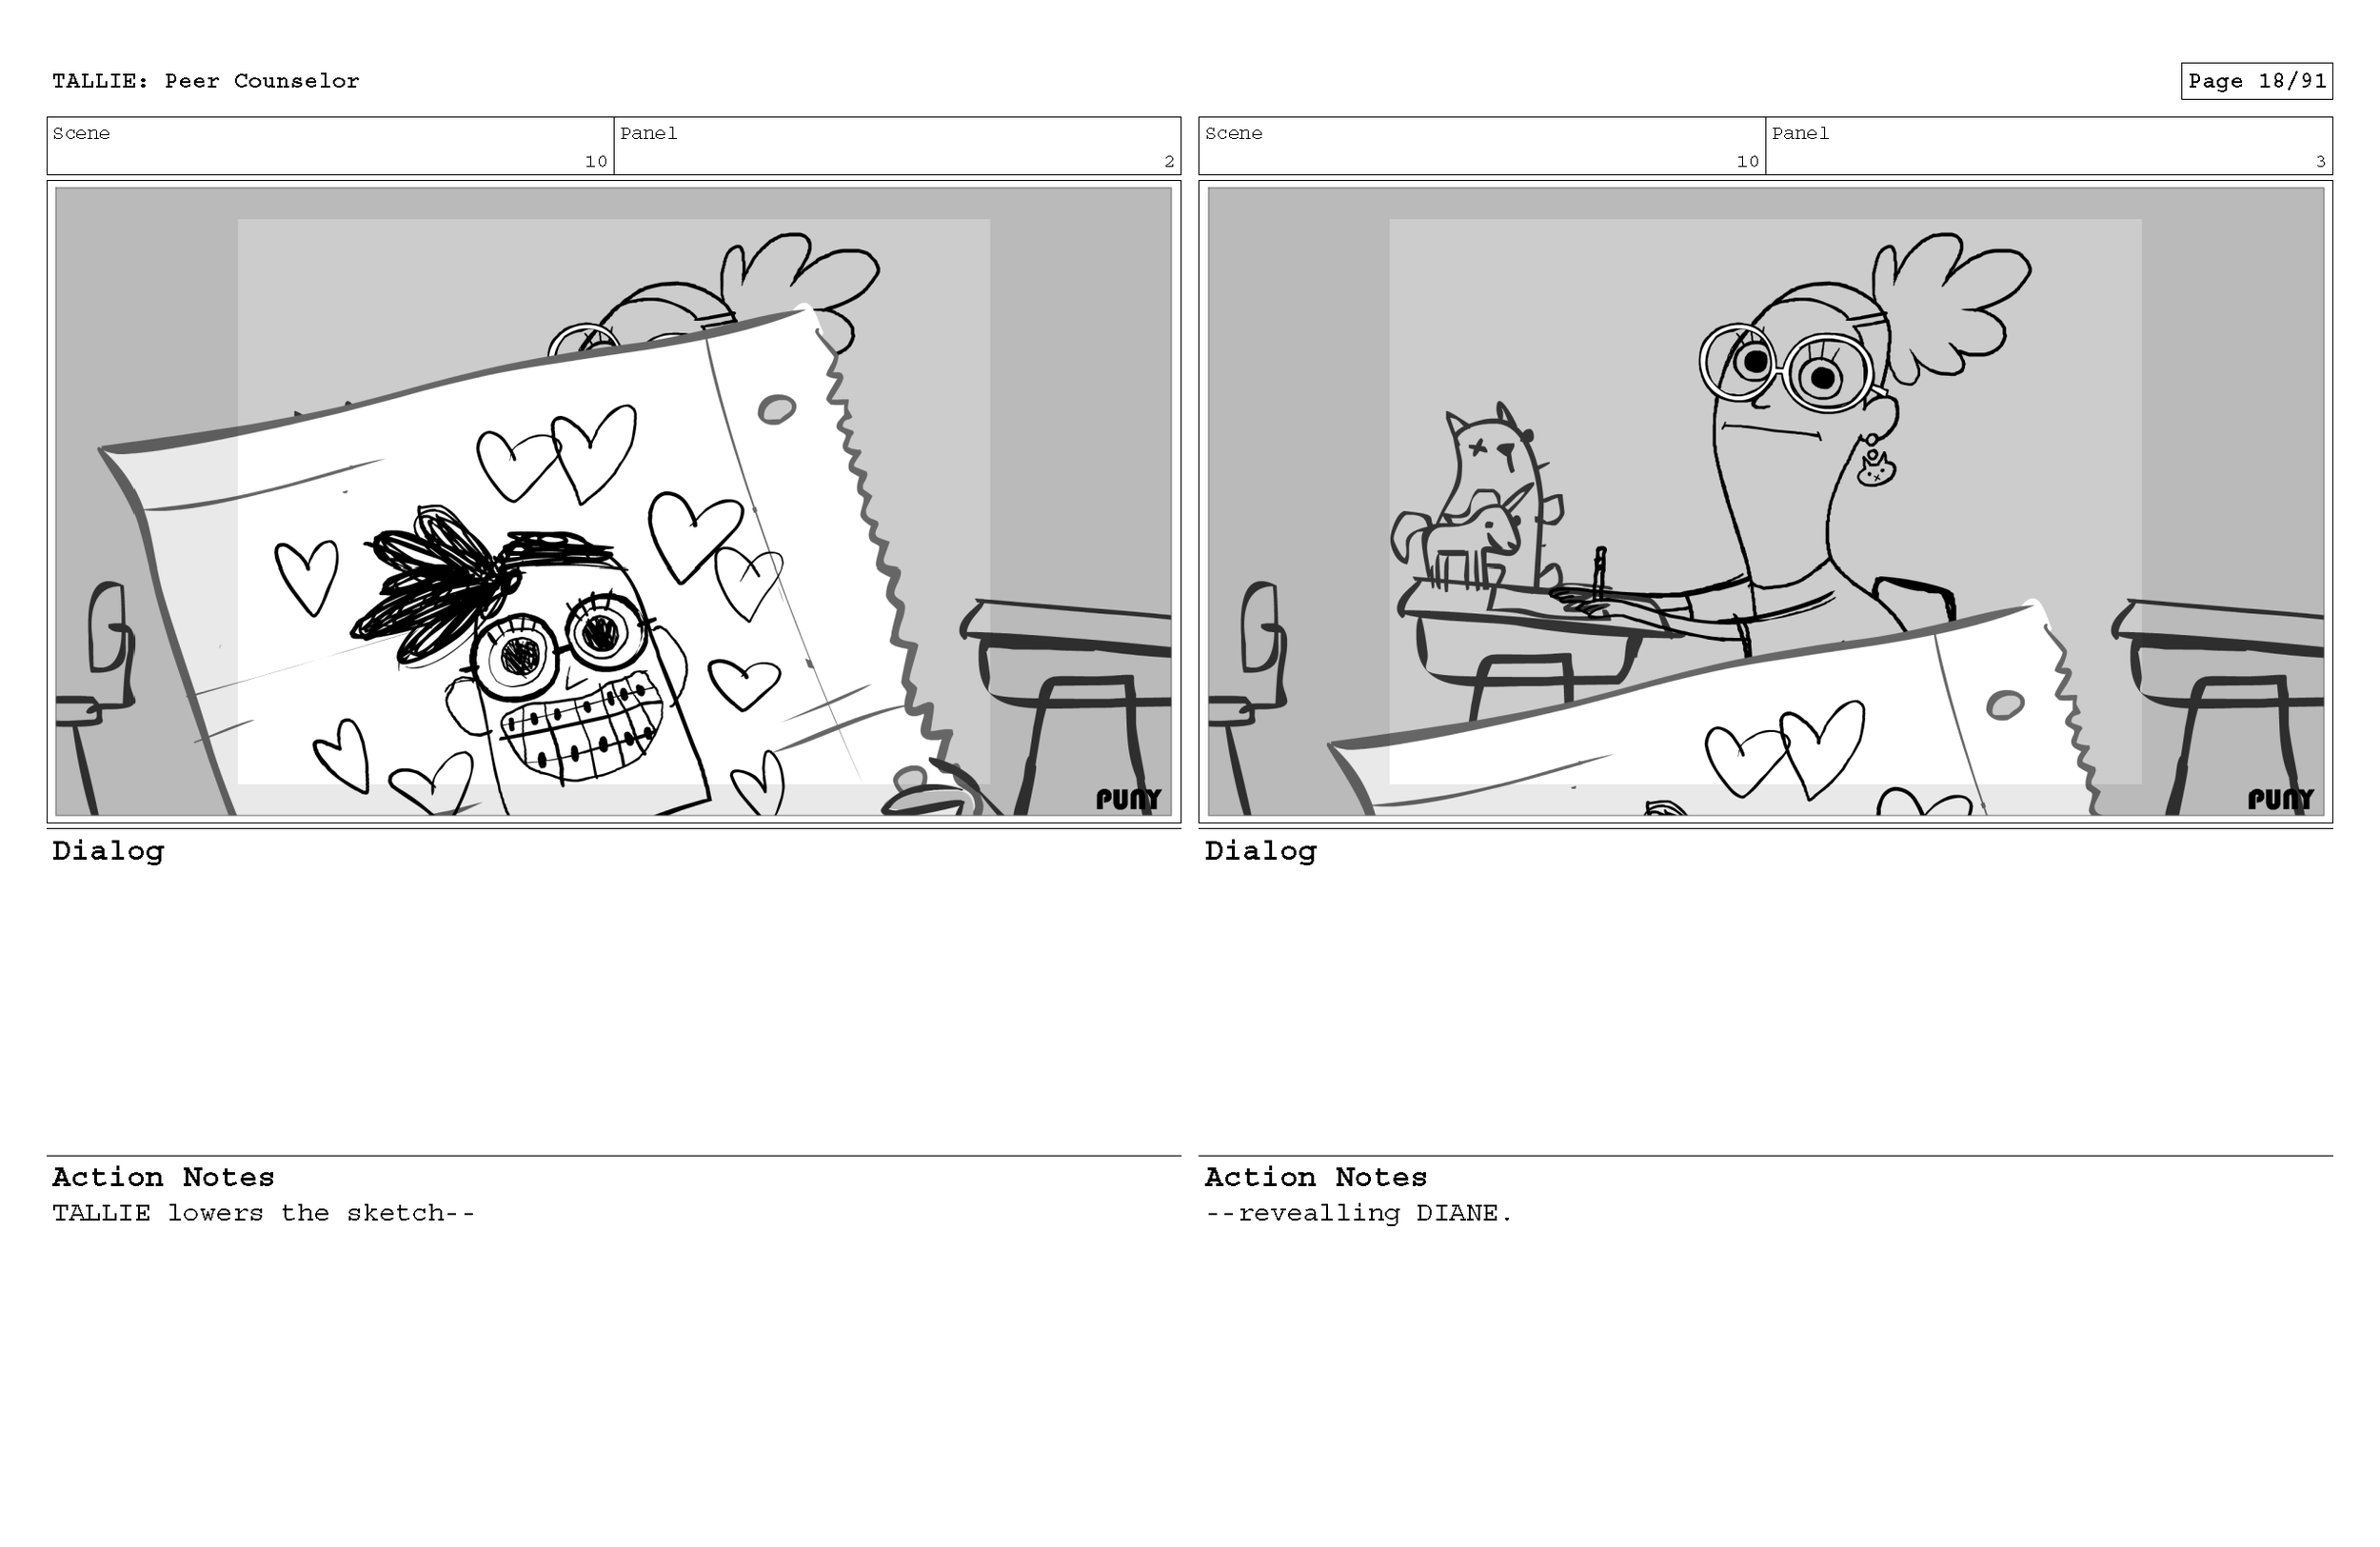 MikeOwens_STORYBOARDS_TallieSilverman_Page_19.png